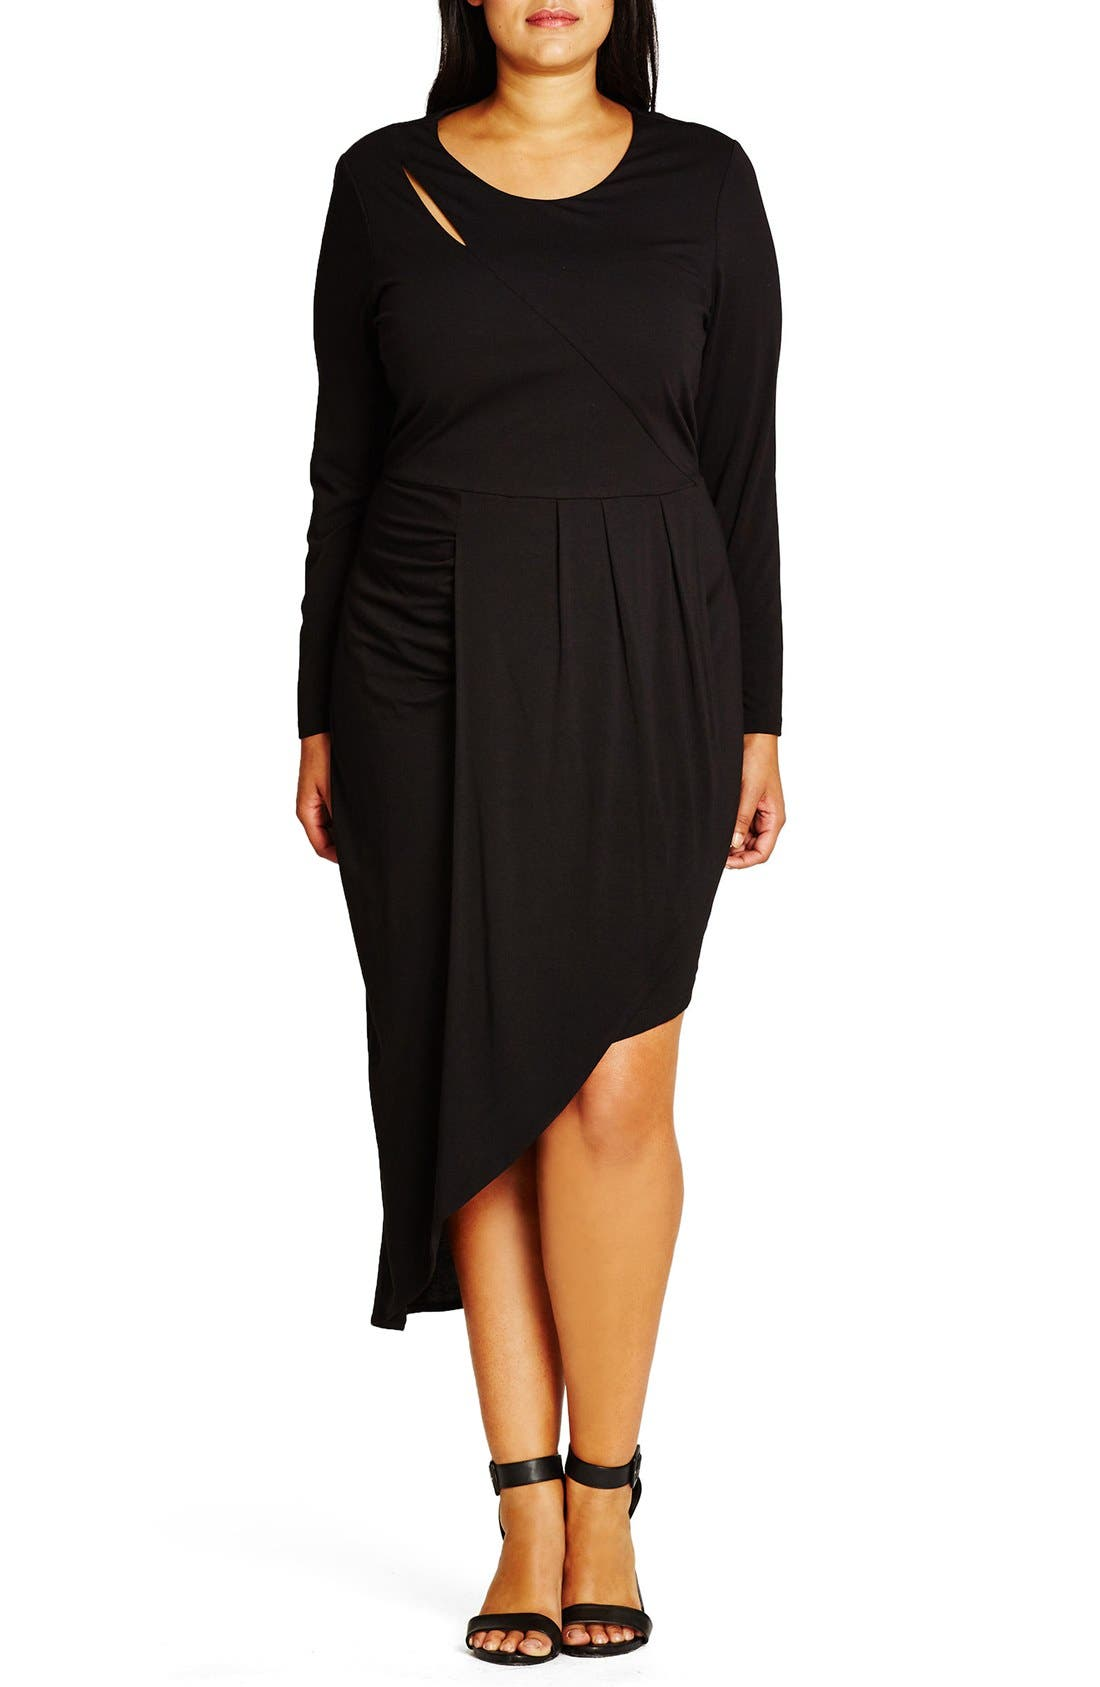 CITY CHIC Wrapped Up Asymmetrical Jersey Dress